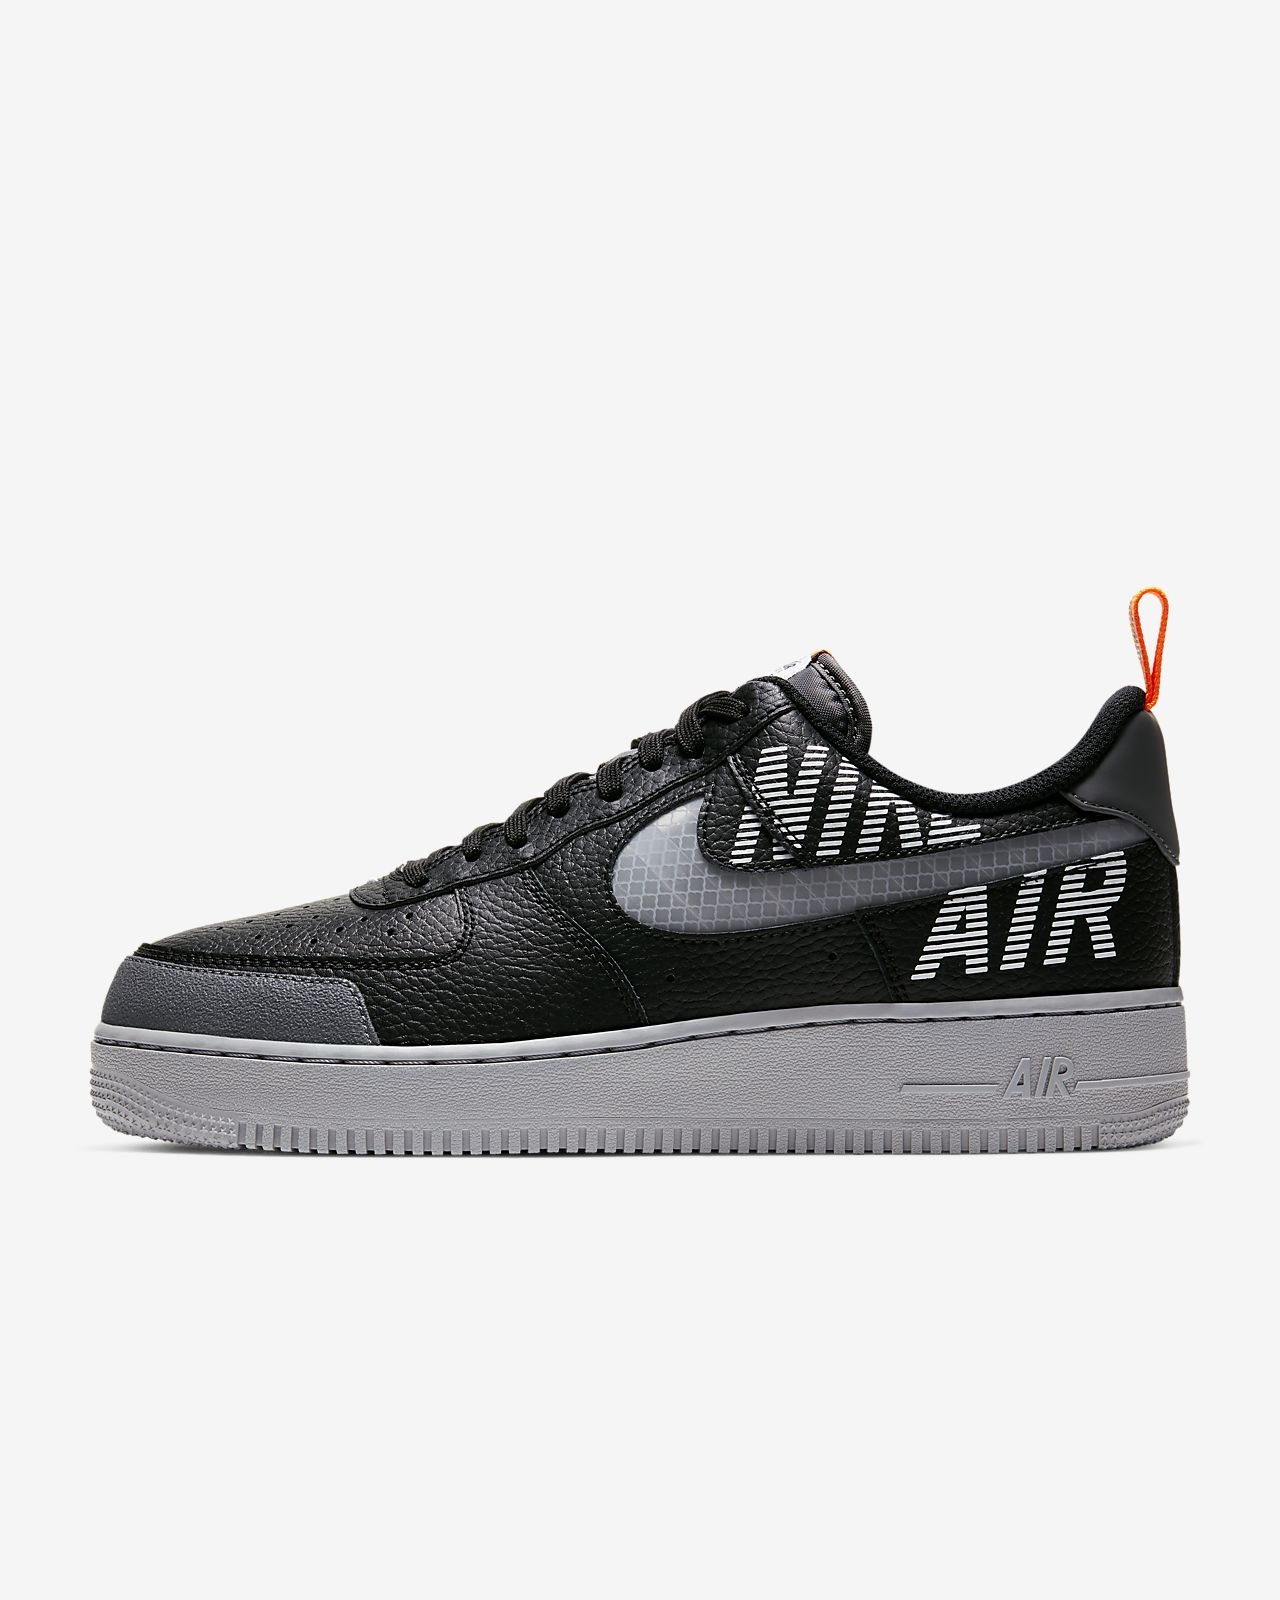 Nike Air Force 1 '07 LV8 Men's Shoe